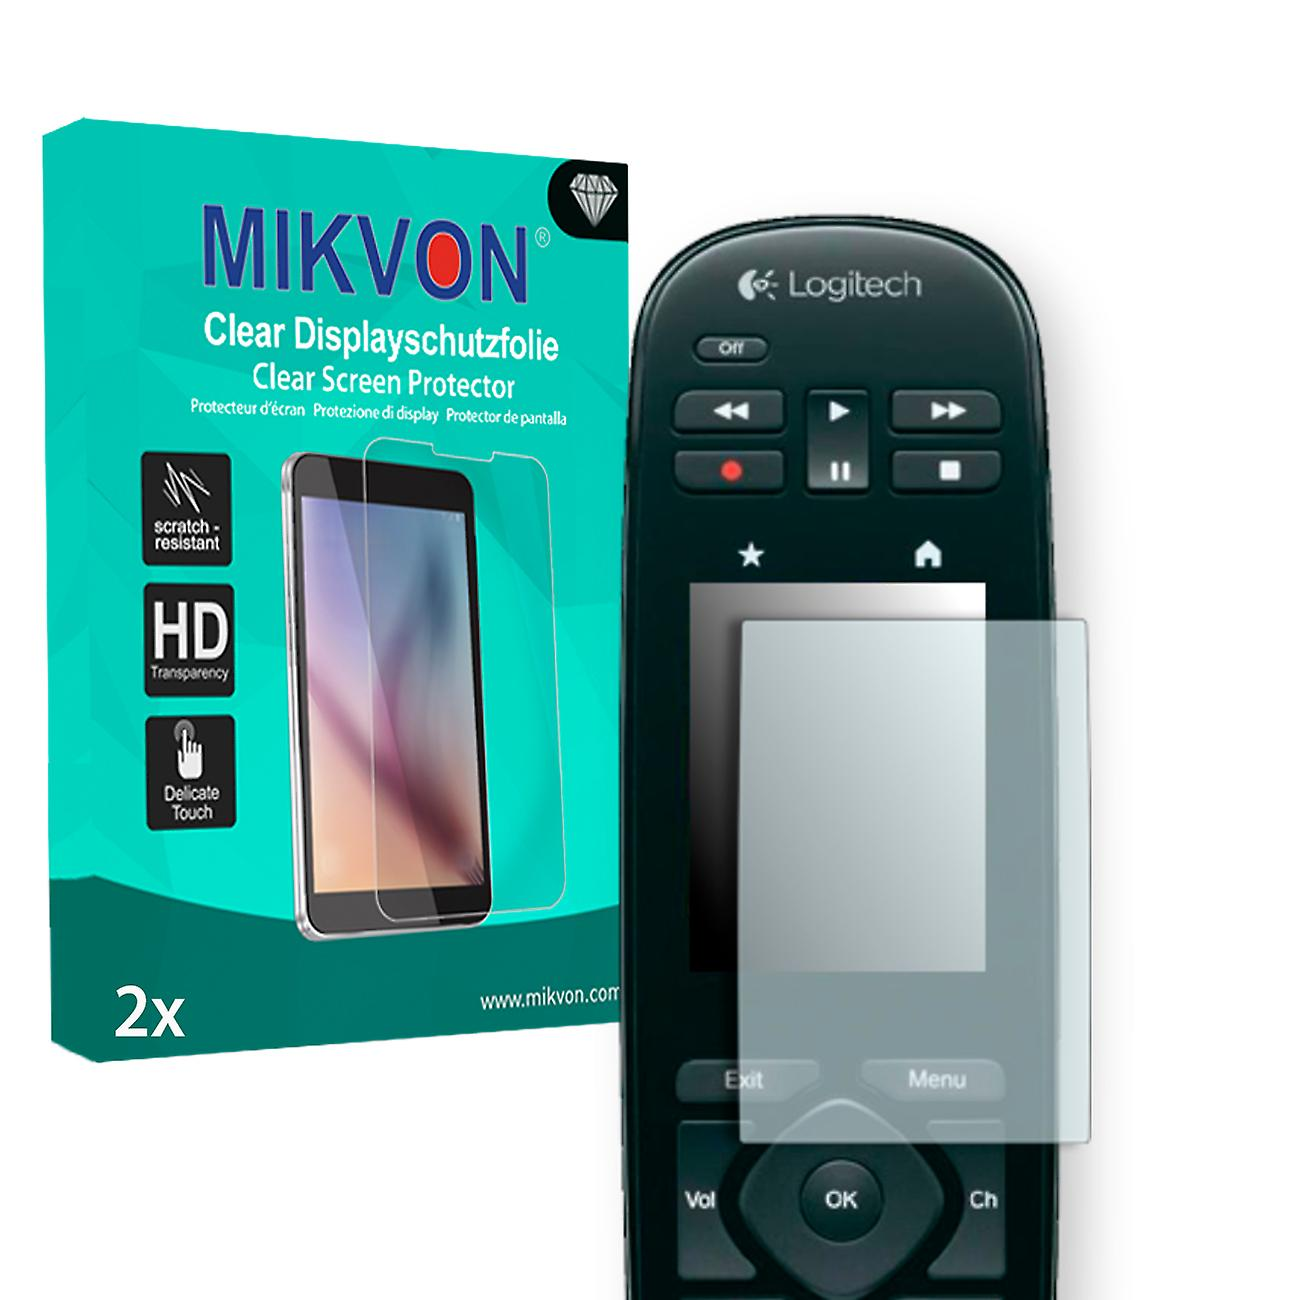 ba92f6138a4 Logitech Harmony Touch Screen Protector - Mikvon Clear (Retail Package with  accessories) (reduced